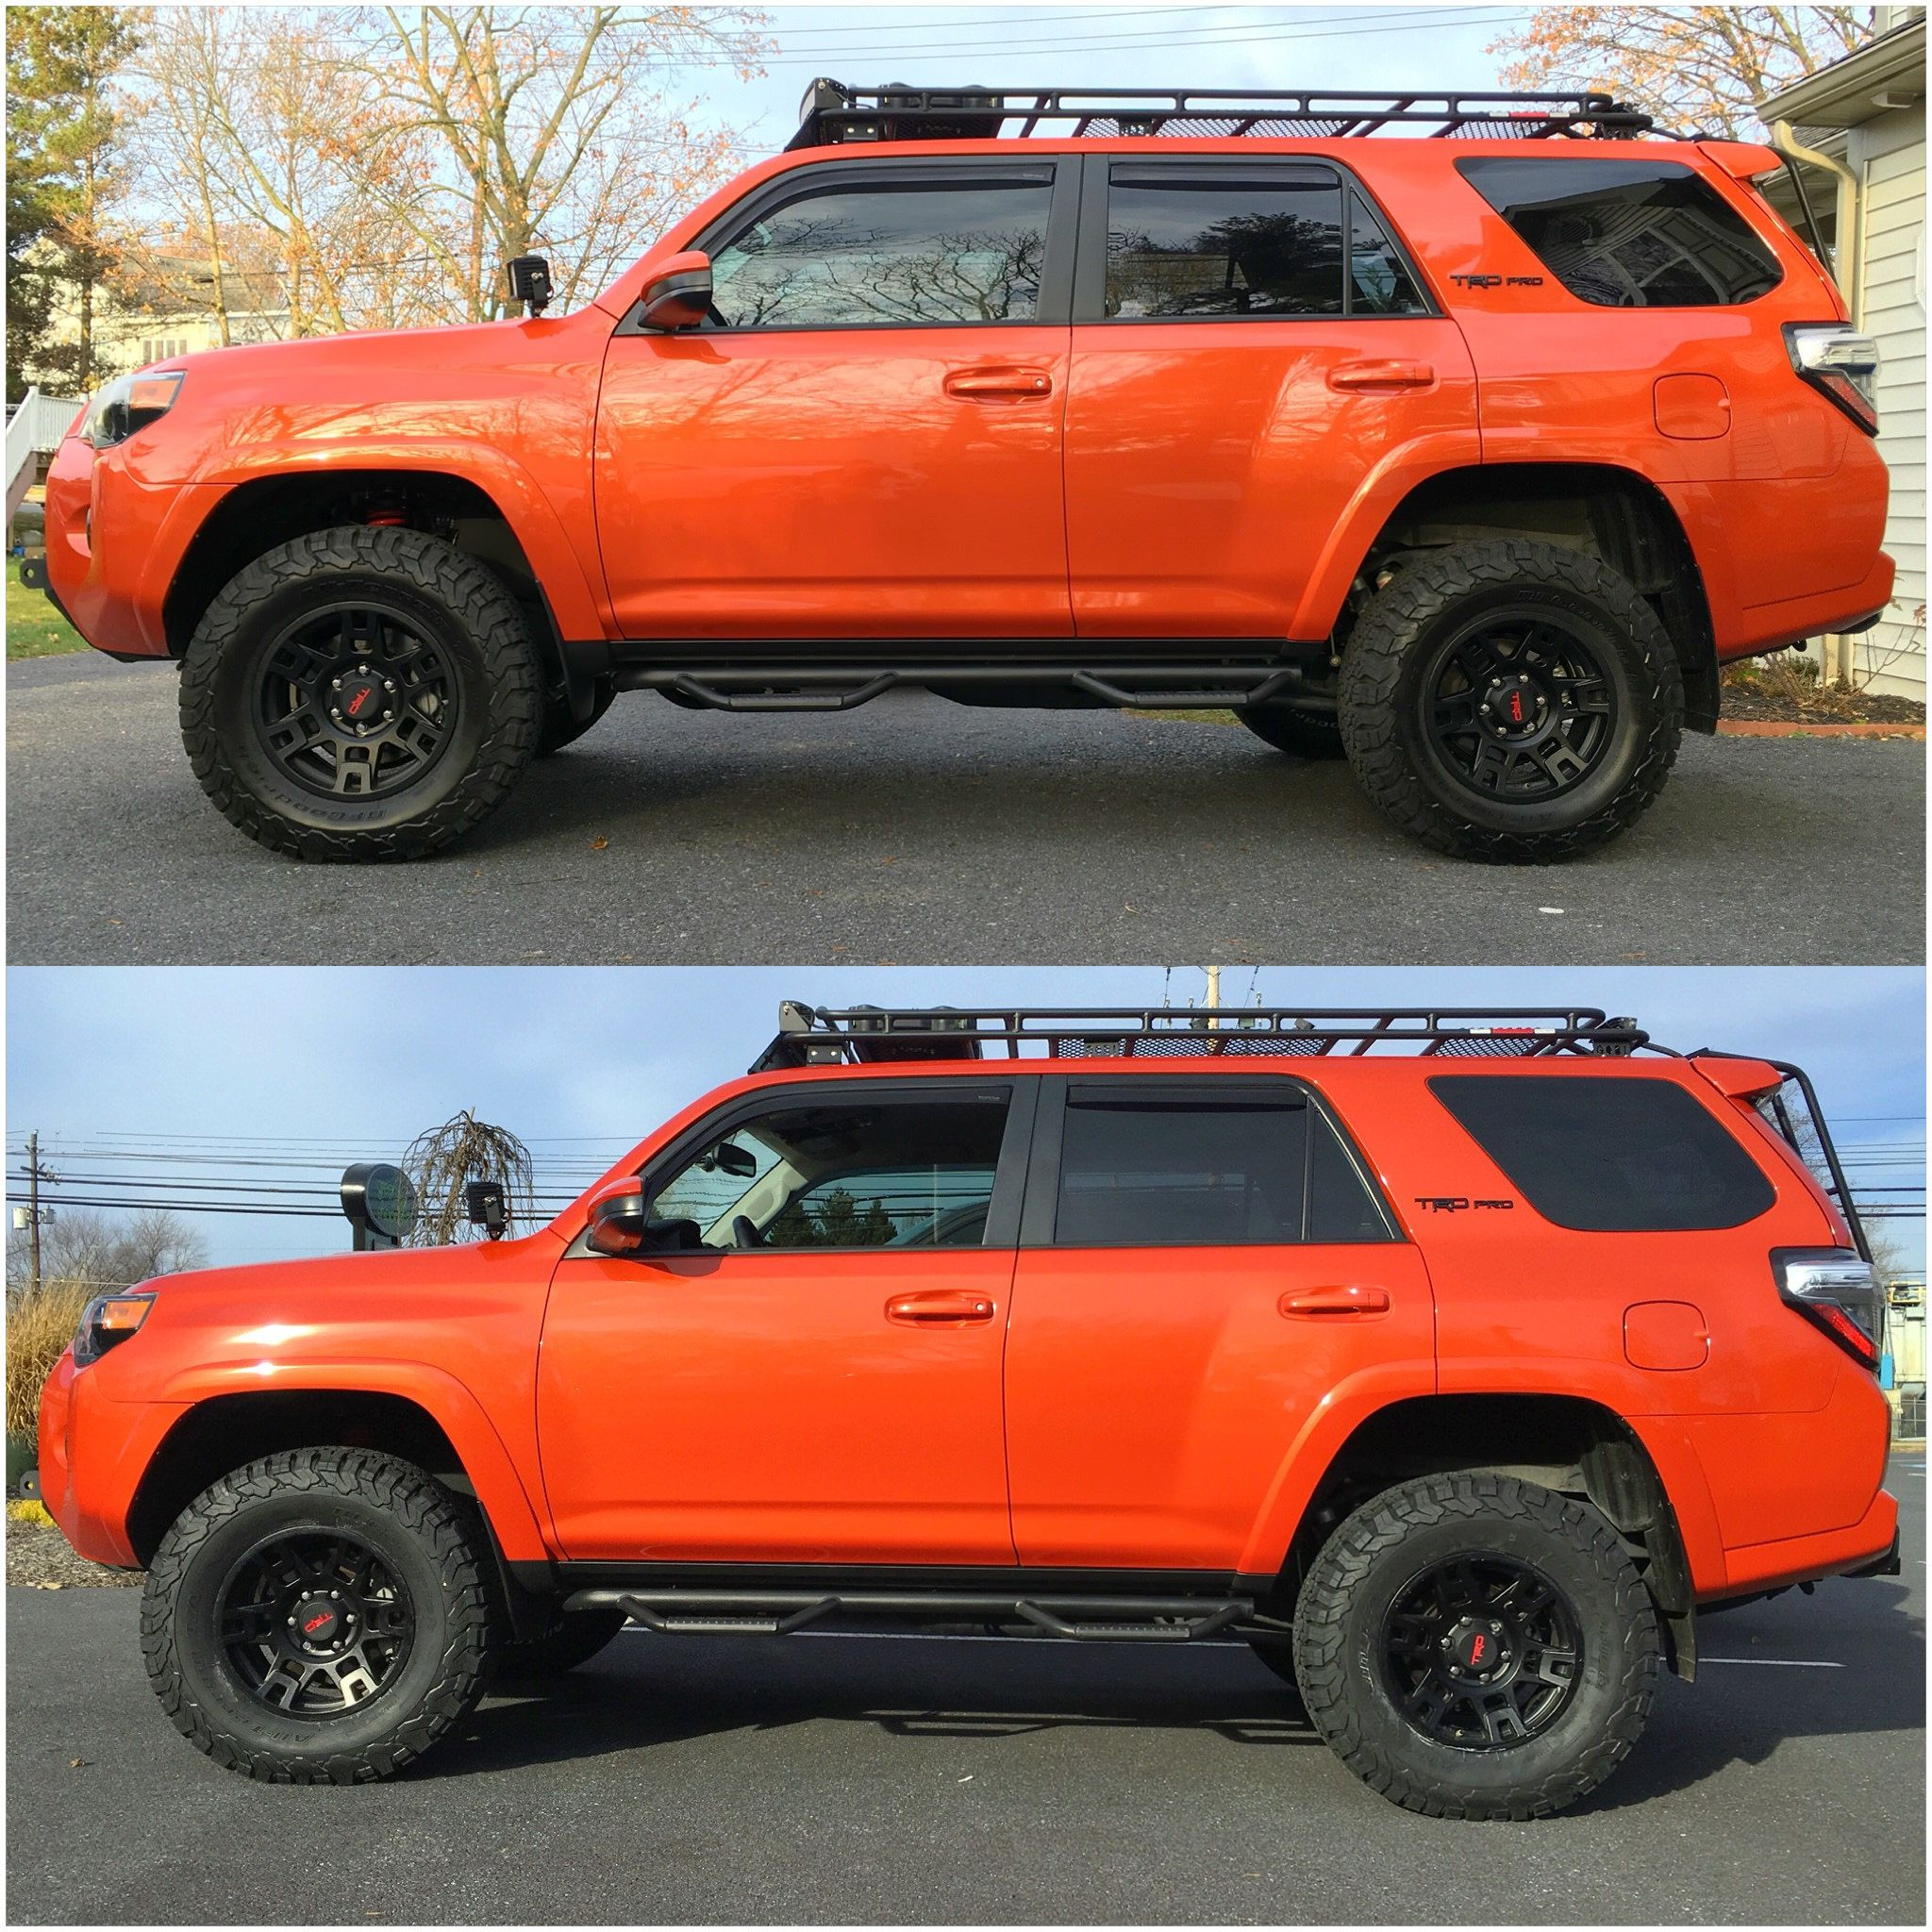 2017 4runner trd pro page 2 toyota 4runner forum largest 4runner - Chudiddy Inferno Trd Pro Build Page 11 Toyota 4runner Forum Largest 4runner